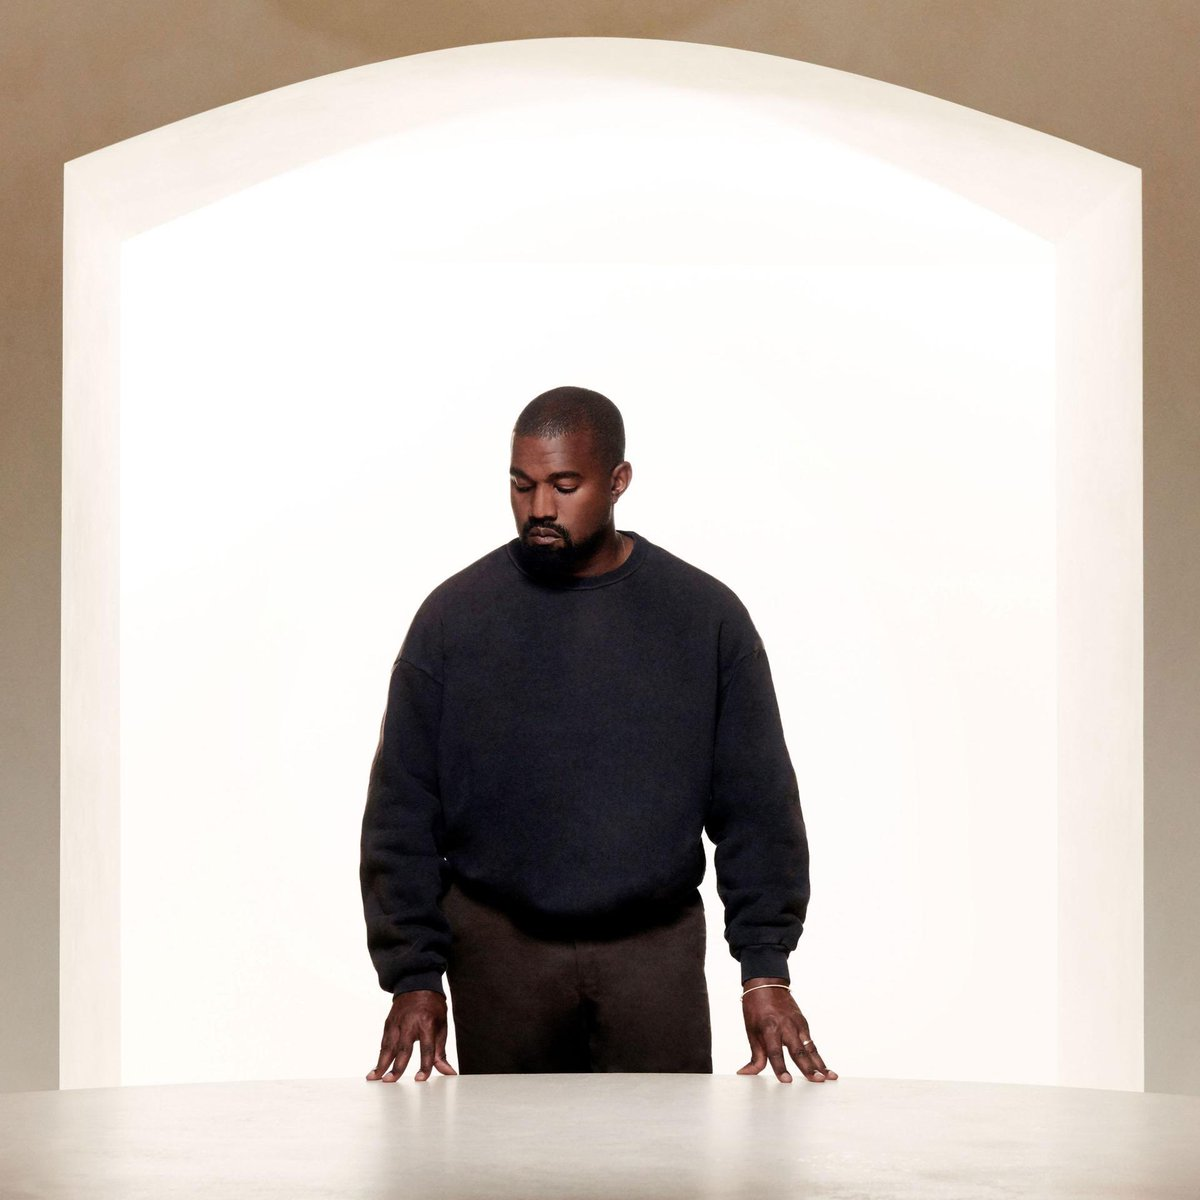 I'm voting for Kanye West for Favorite Artist - Contemporary Inspirational at the #AMAs https://t.co/8inIqhK0Rp